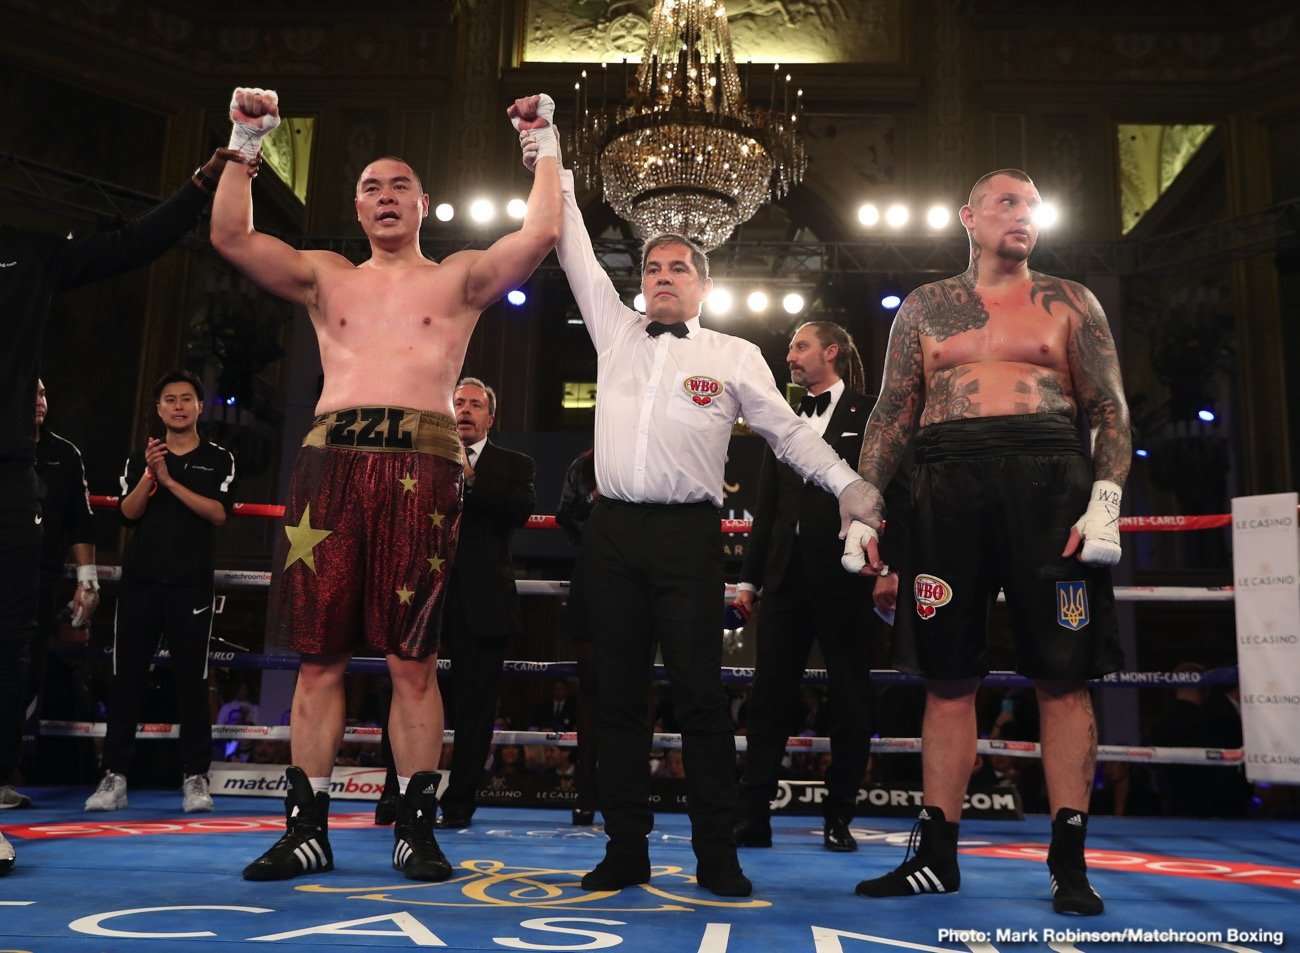 "On Saturday, November 30th, Roc Nation Sports' Chinese heavyweight star Zhang ""Big Bang"" Zhilei (21-0, 16 KOs) dominated tough veteran contender  Andriy Rudenko (32-5, 20 KOs) of Ukraine in a 10 round bout at the Casino de Monte-Carlo in Monaco. Zhilei has now skyrocketed to the top of the heavyweight division, beating Rudenko by way of unanimous decision. The score was 99-91, 98-92, 97-93."